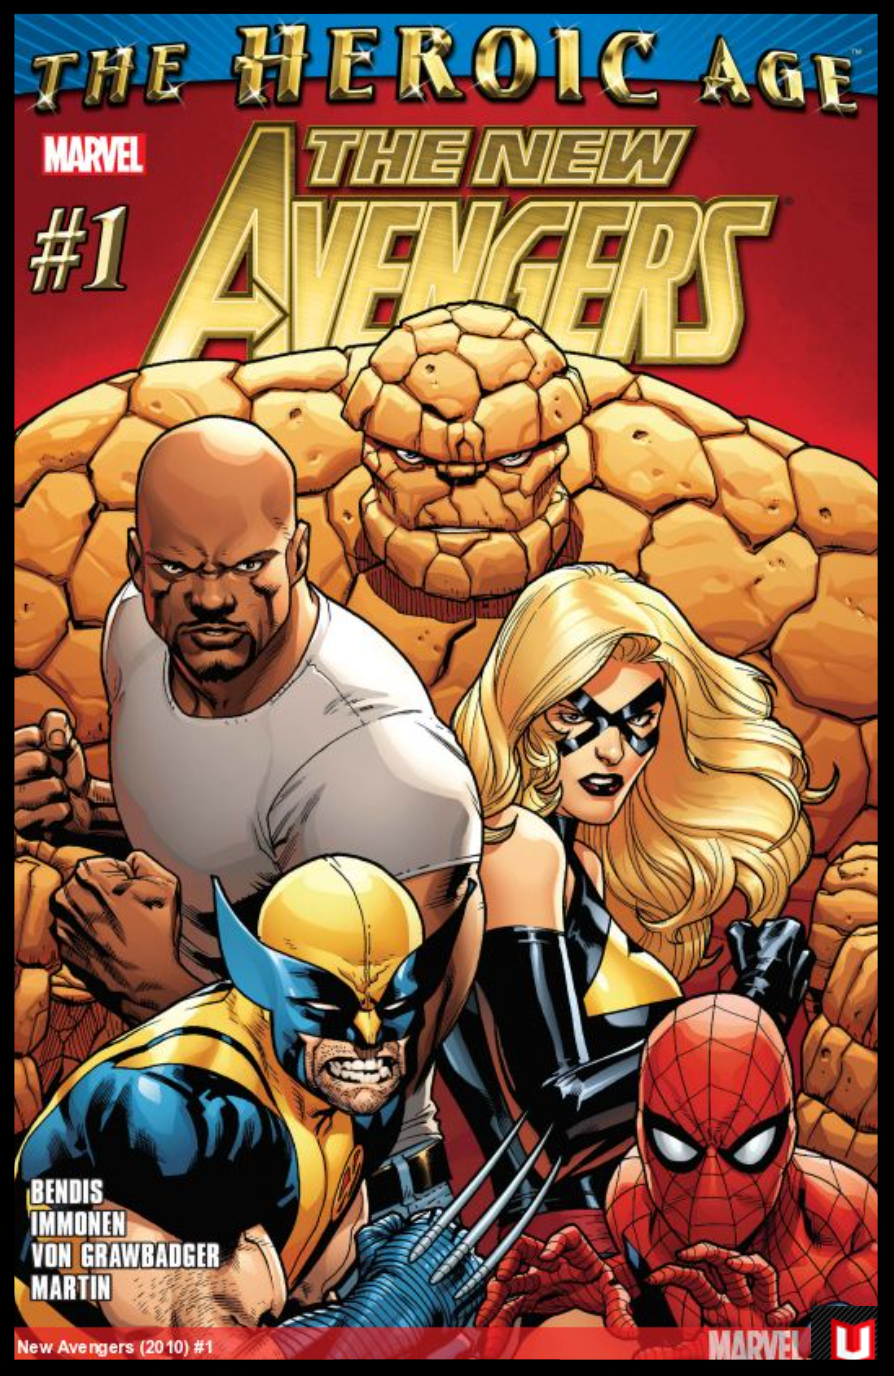 The New Avengers #1 Cover